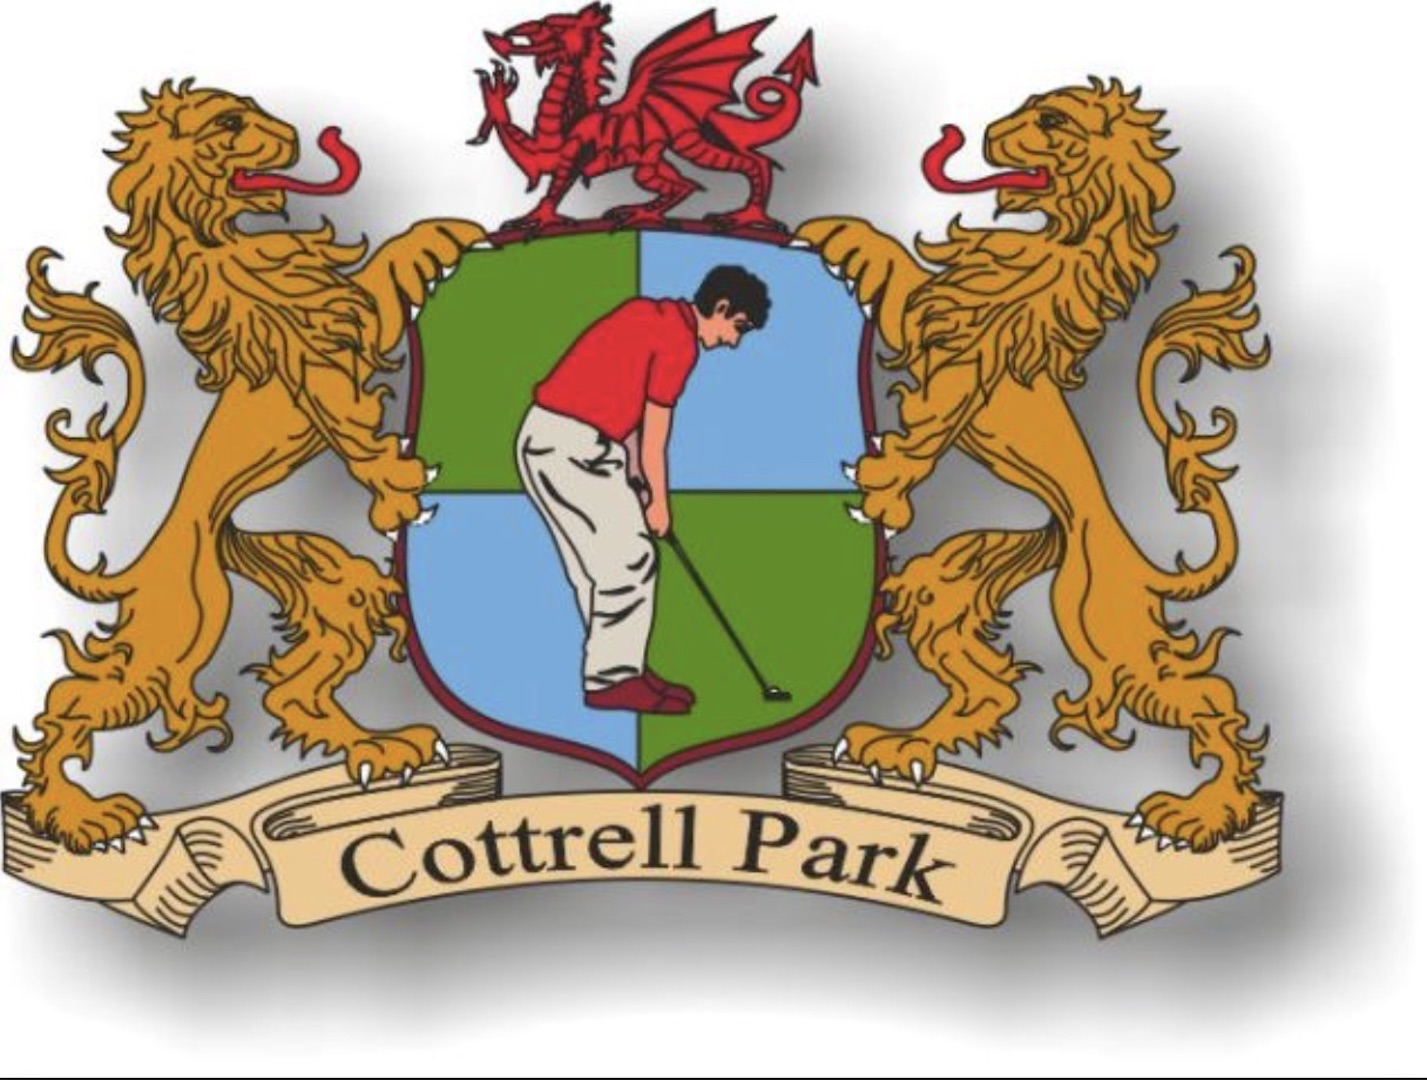 Cottrell Park Golf Club fights back